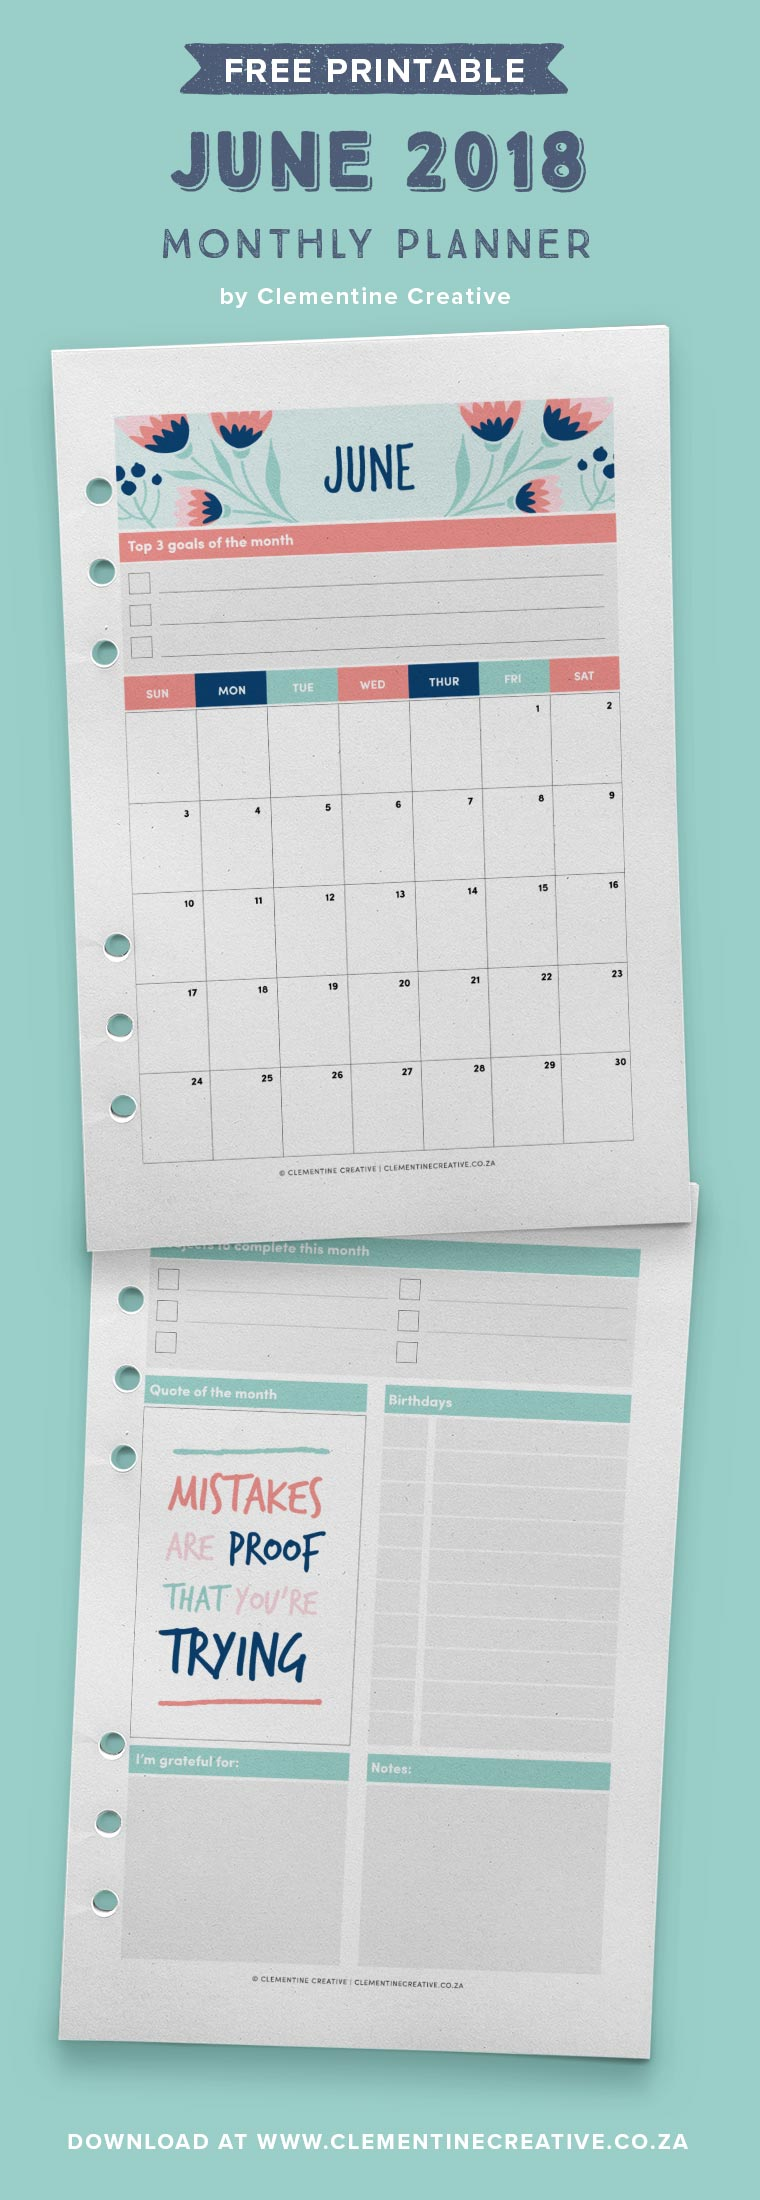 June 2018 free printable monthly planner. Available in A4, A5, Pocket and Personal sizes.